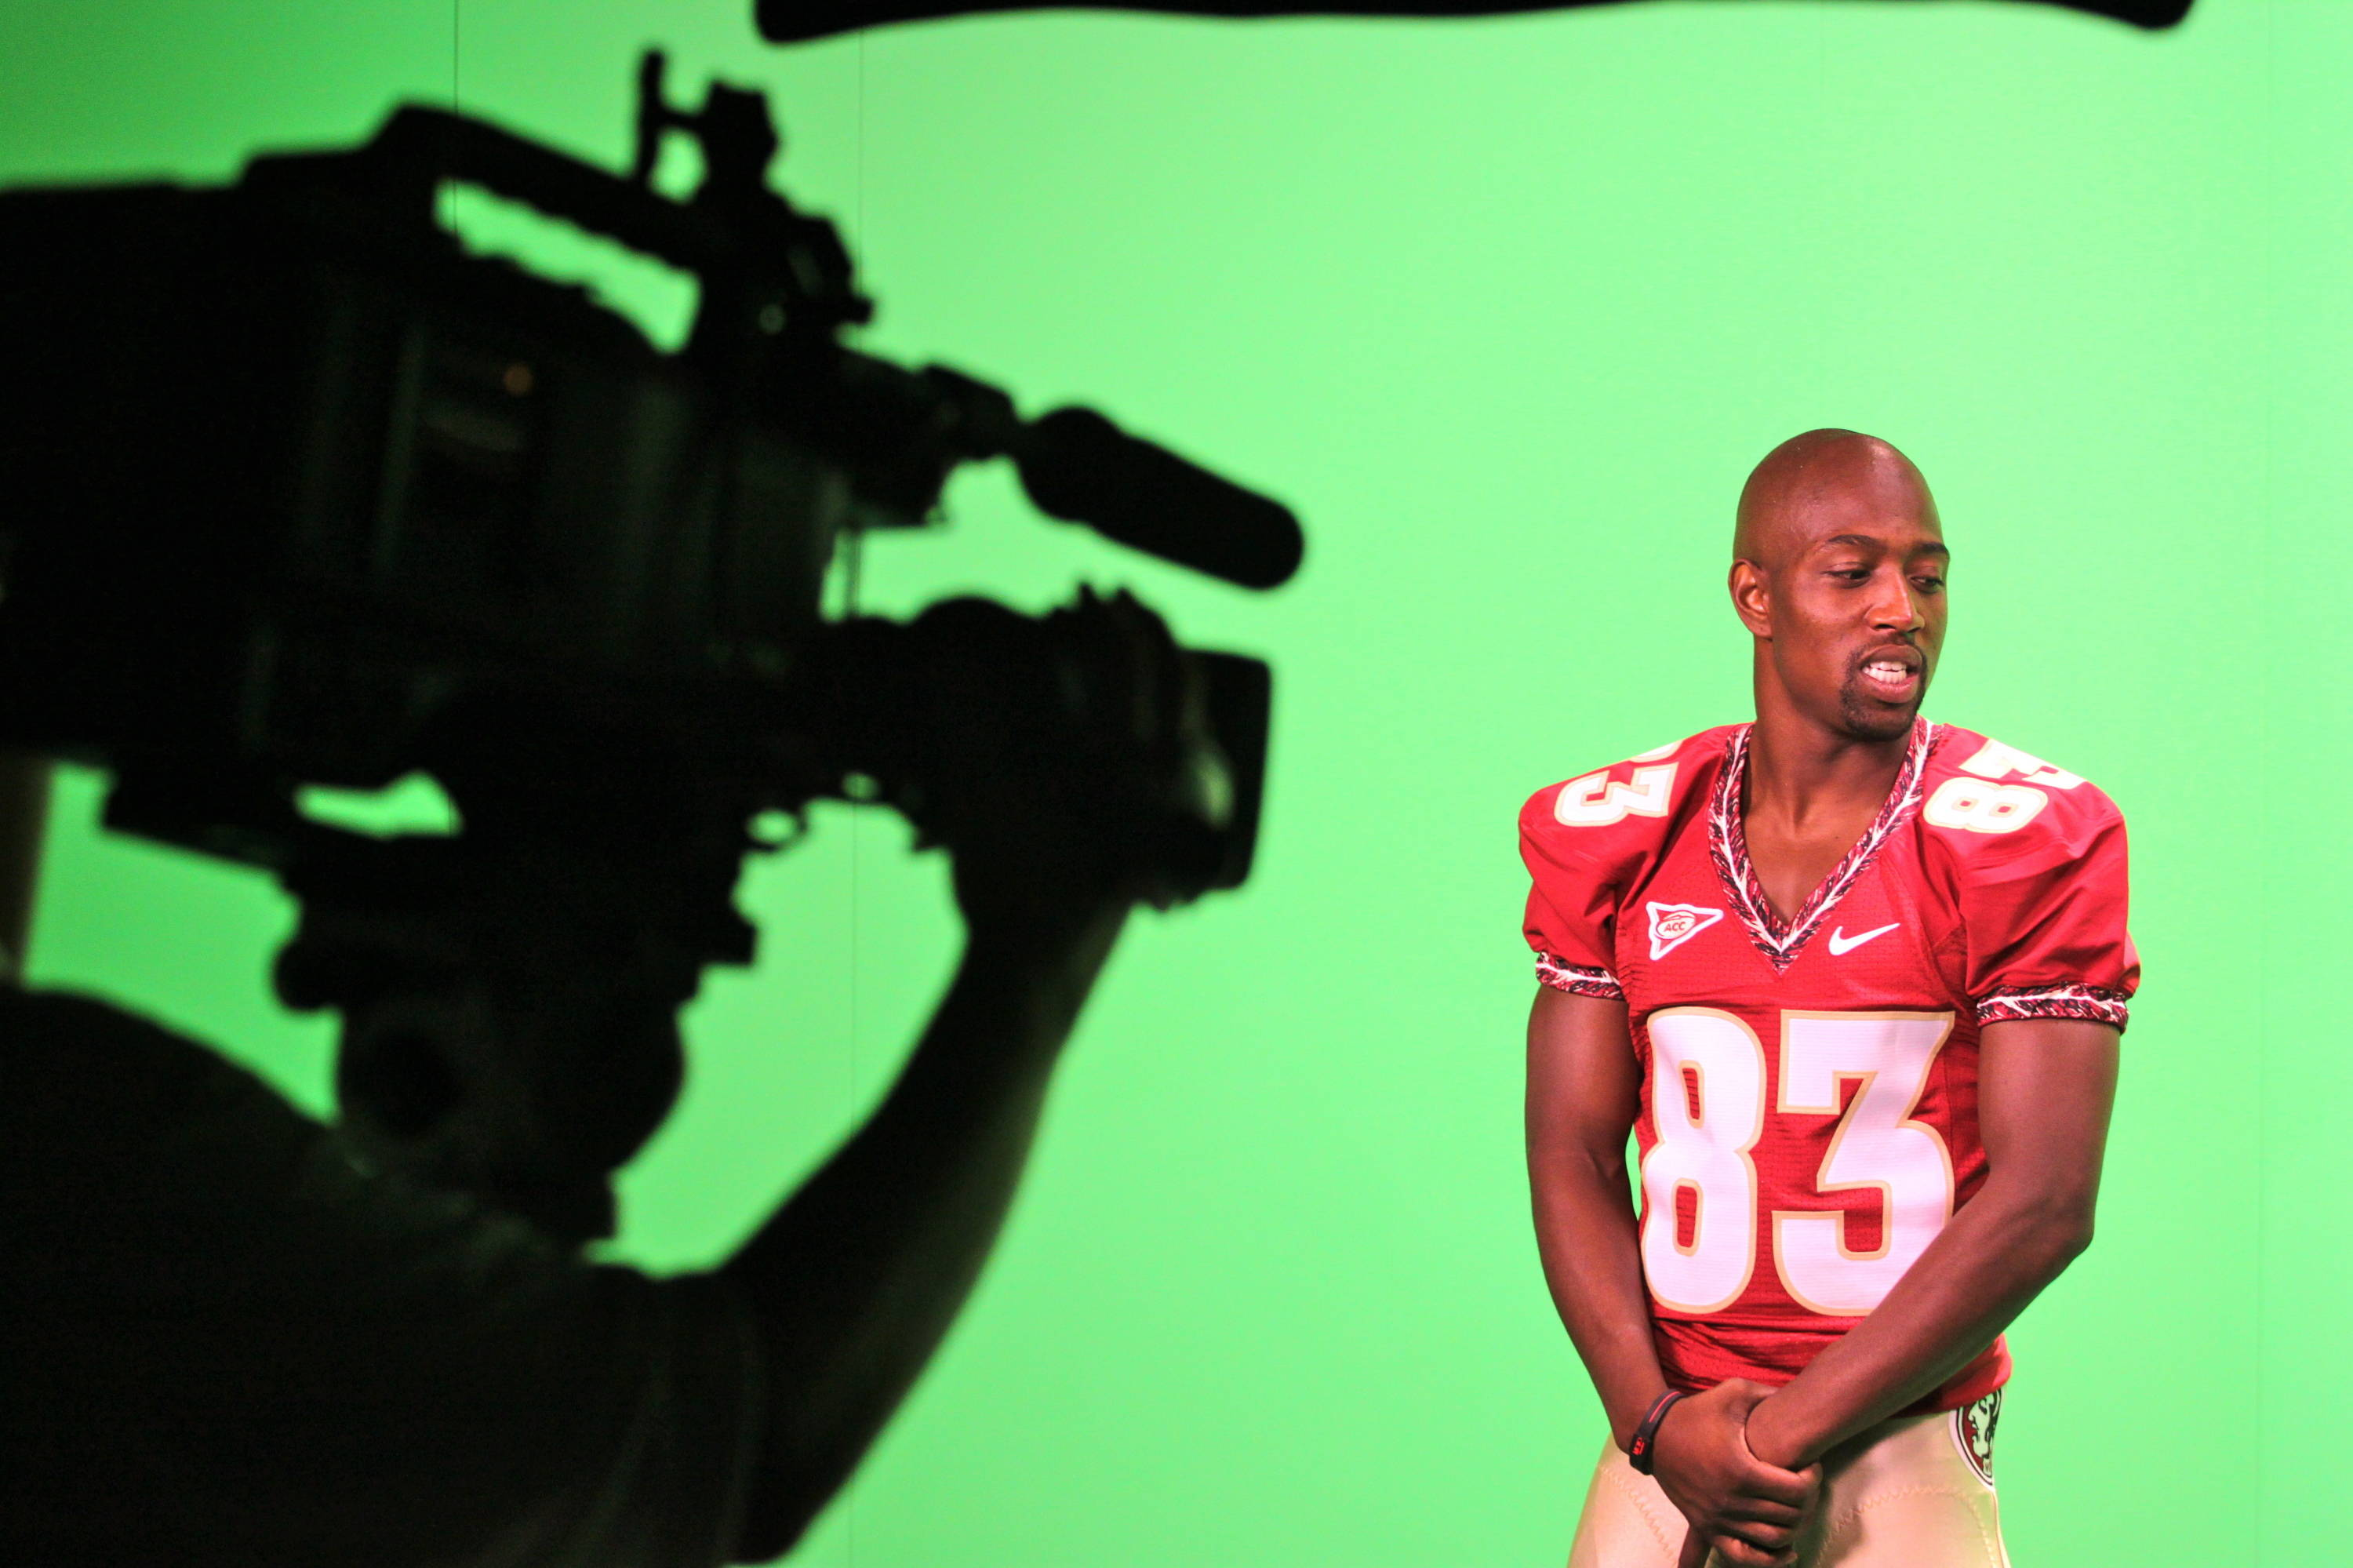 Bert Reed being shot on the green screen in Seminole Productions.